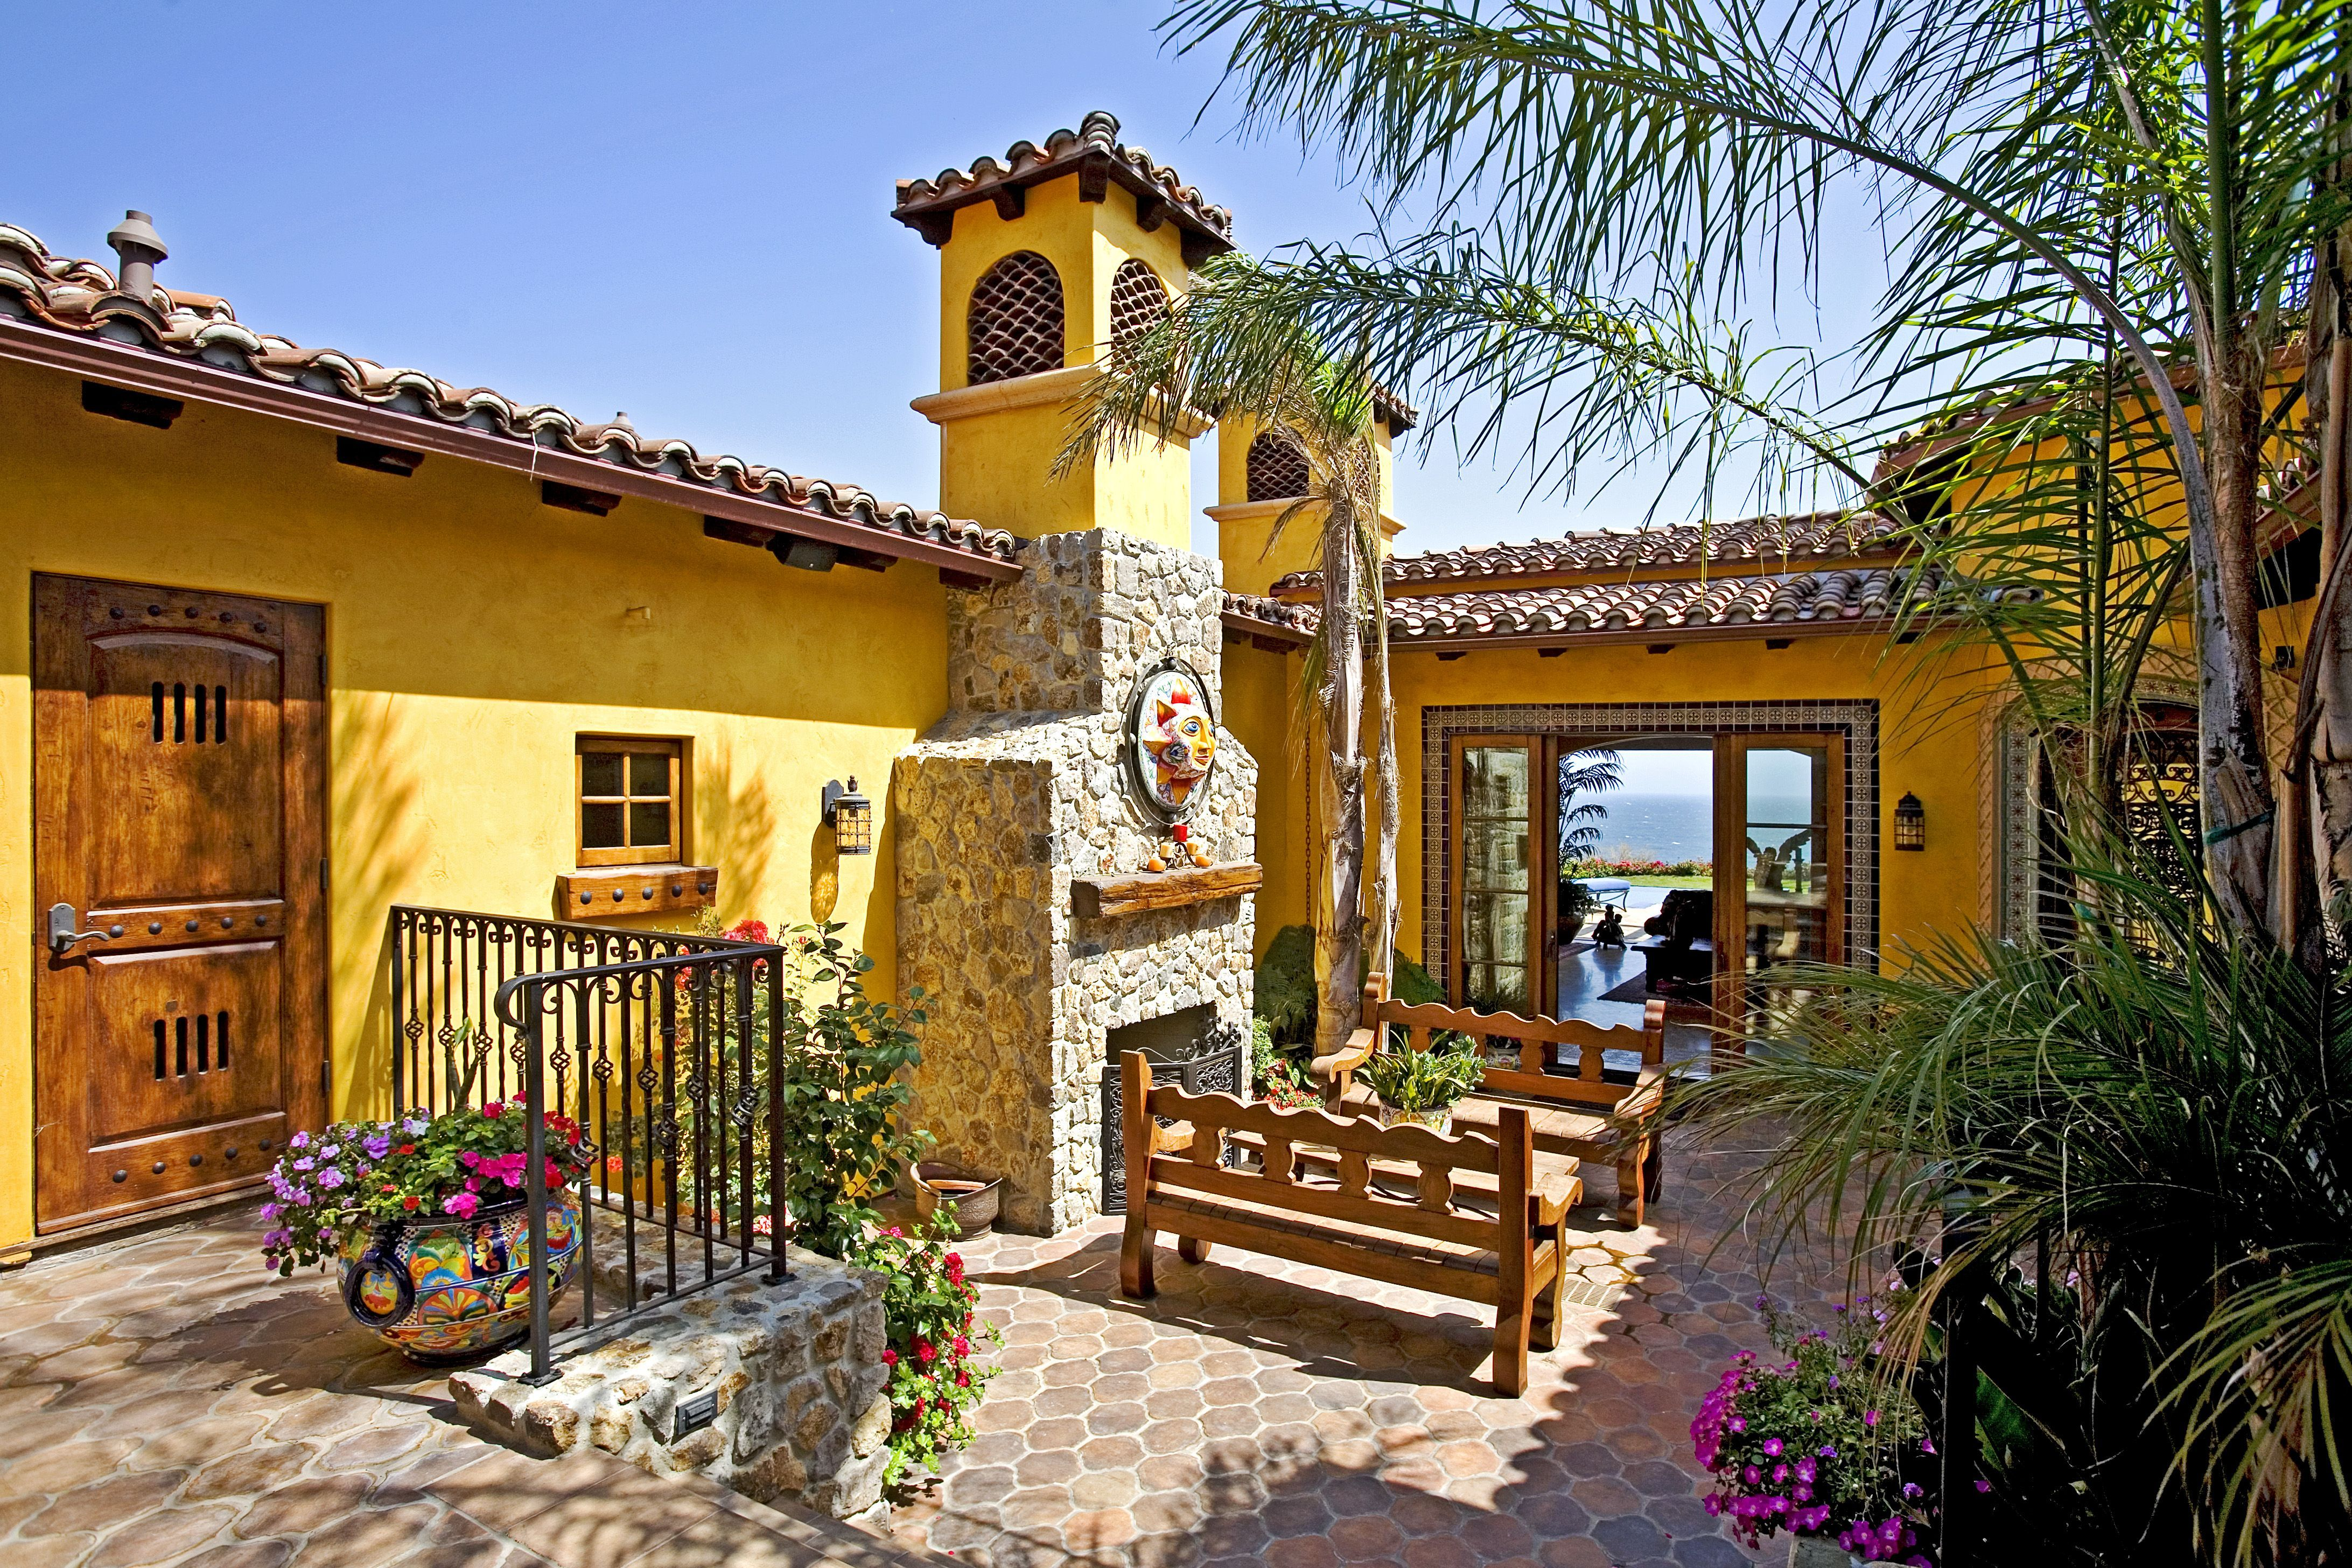 30df46b25ee493db8956ae4e3bba3be0 Home Plans Courtyard Spanish Casita on vintage home plans, spanish style homes with courtyards, old world italian home plans, contemporary modern home plans, spanish contemporary home plans, traditional spanish floor plans, dan sater's mediterranean home plans, spanish villa plans, center open home plans, architecture courtyard design plans,